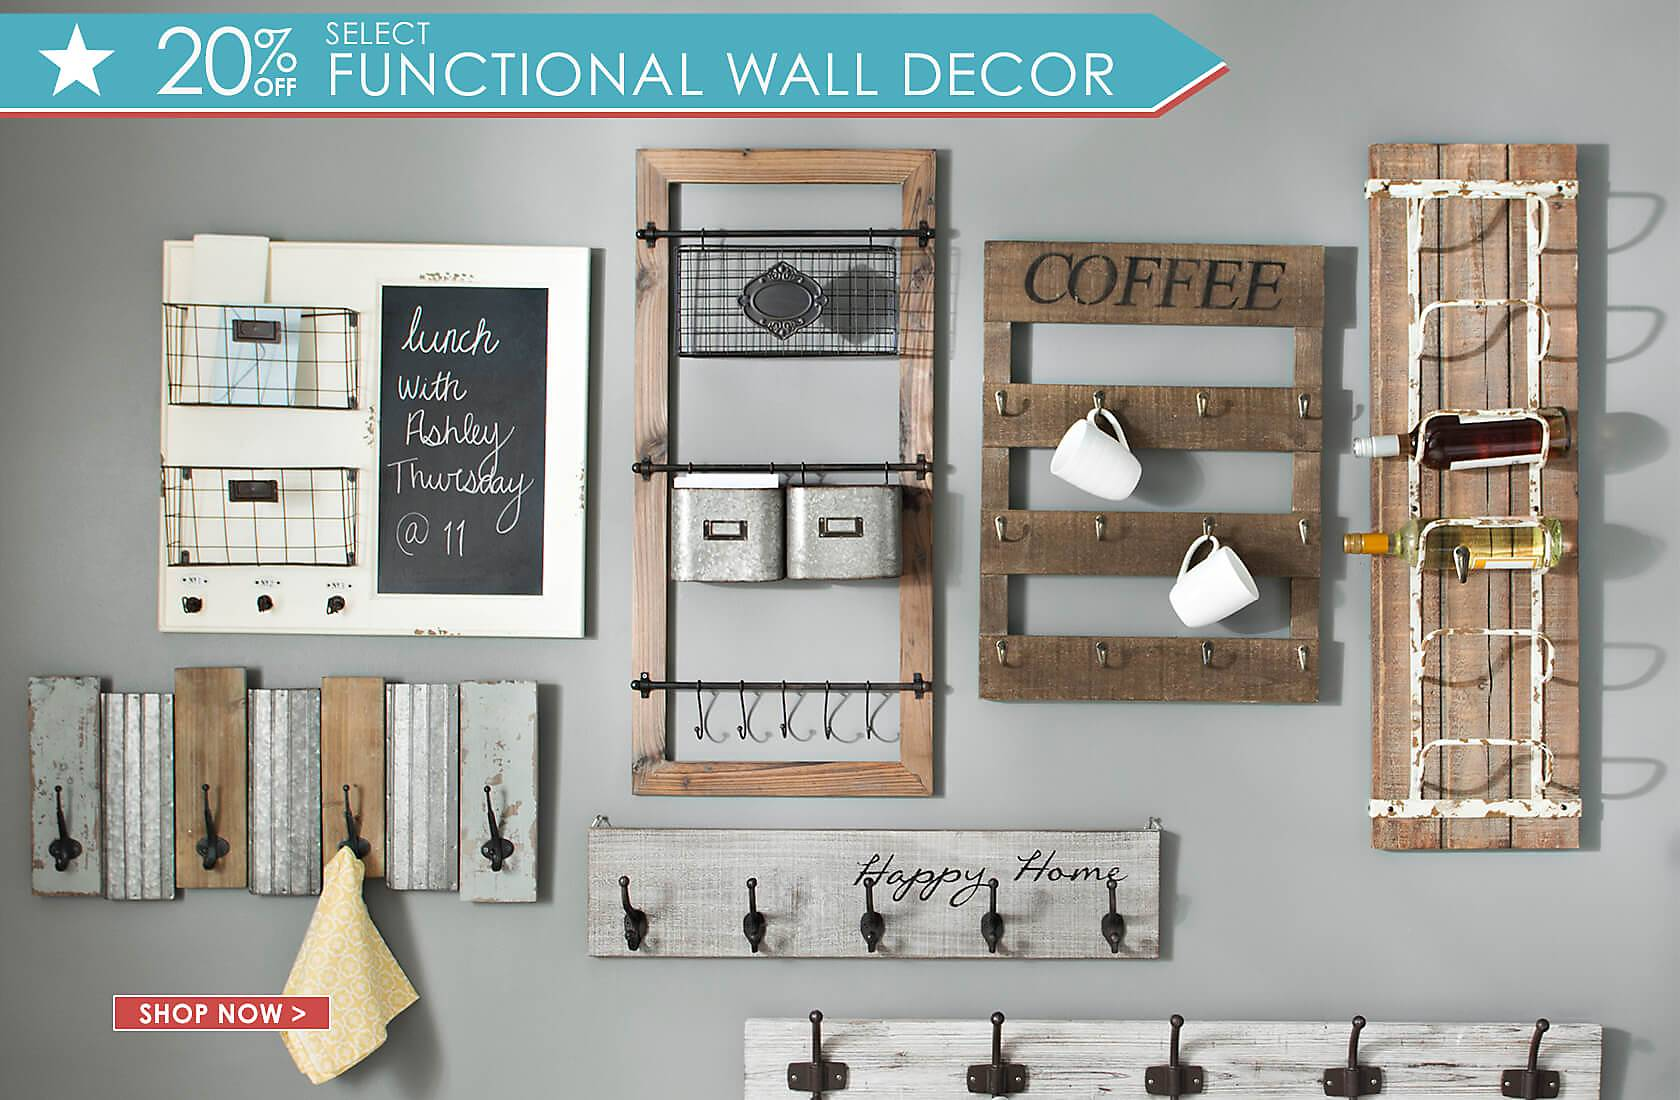 20% Off Select Functional Wall Decor - Shop Now